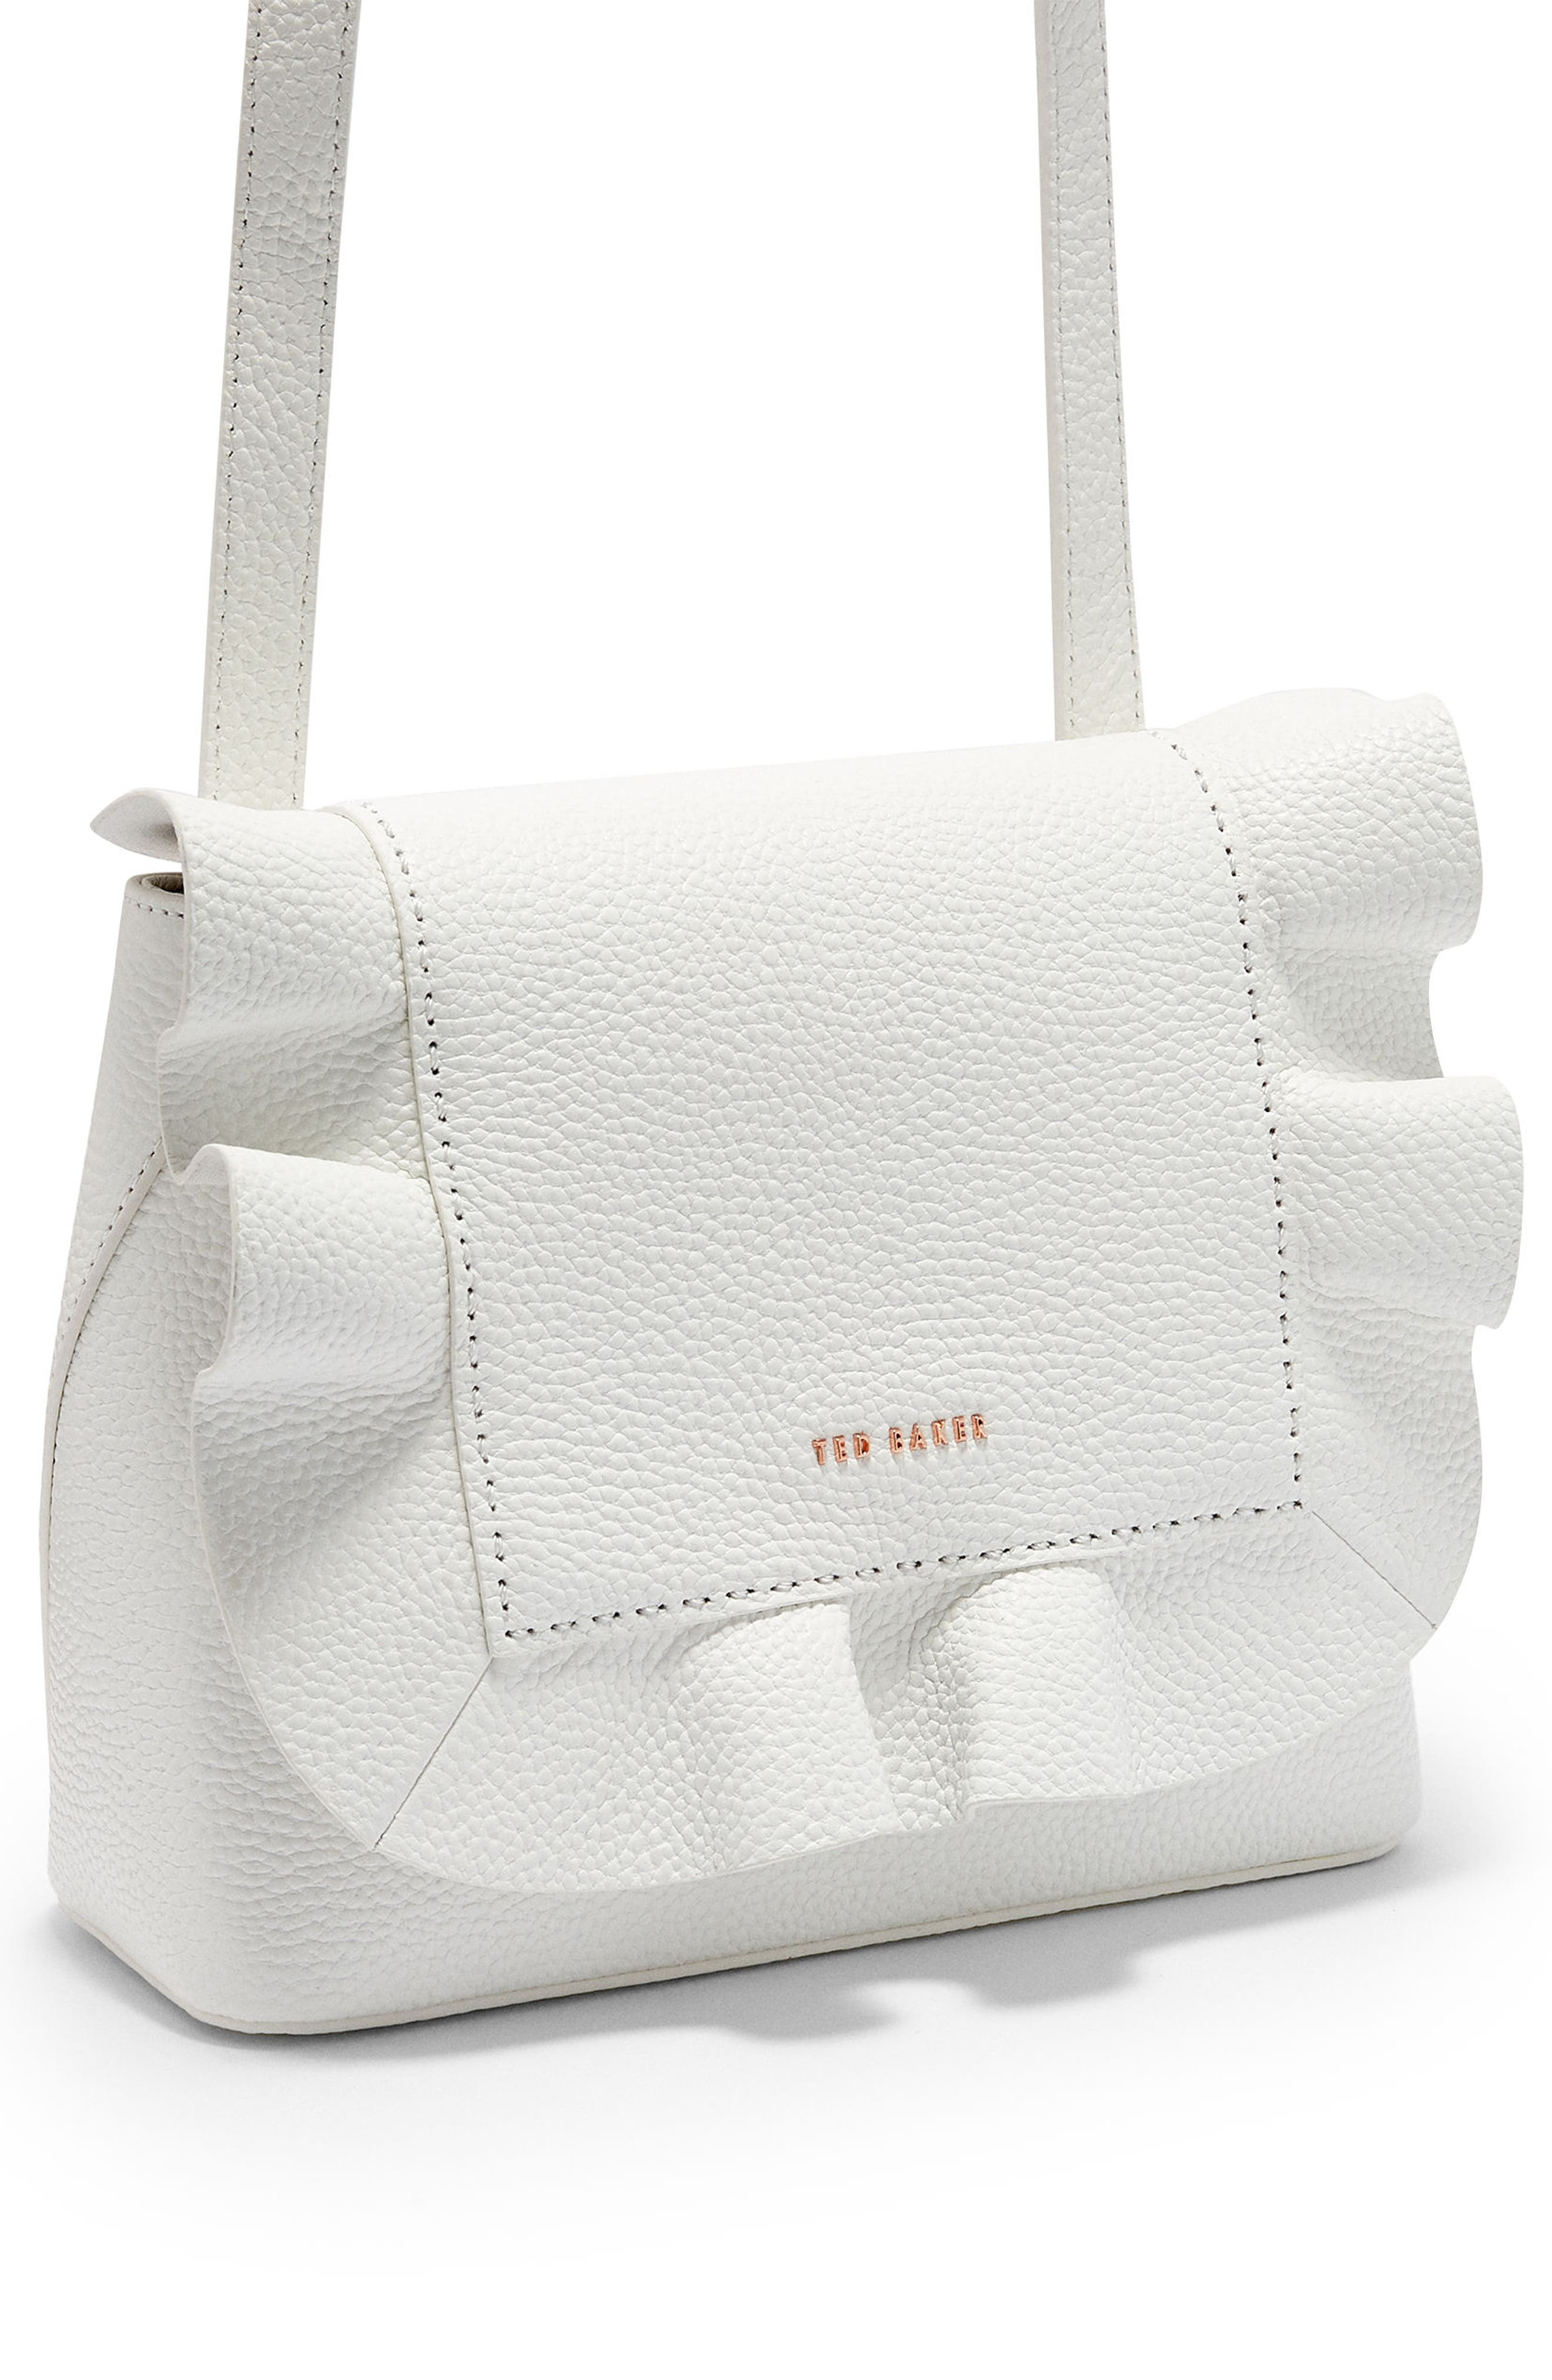 Rammira Leather Convertible Backpack,                             Alternate thumbnail 5, color,                             WHITE